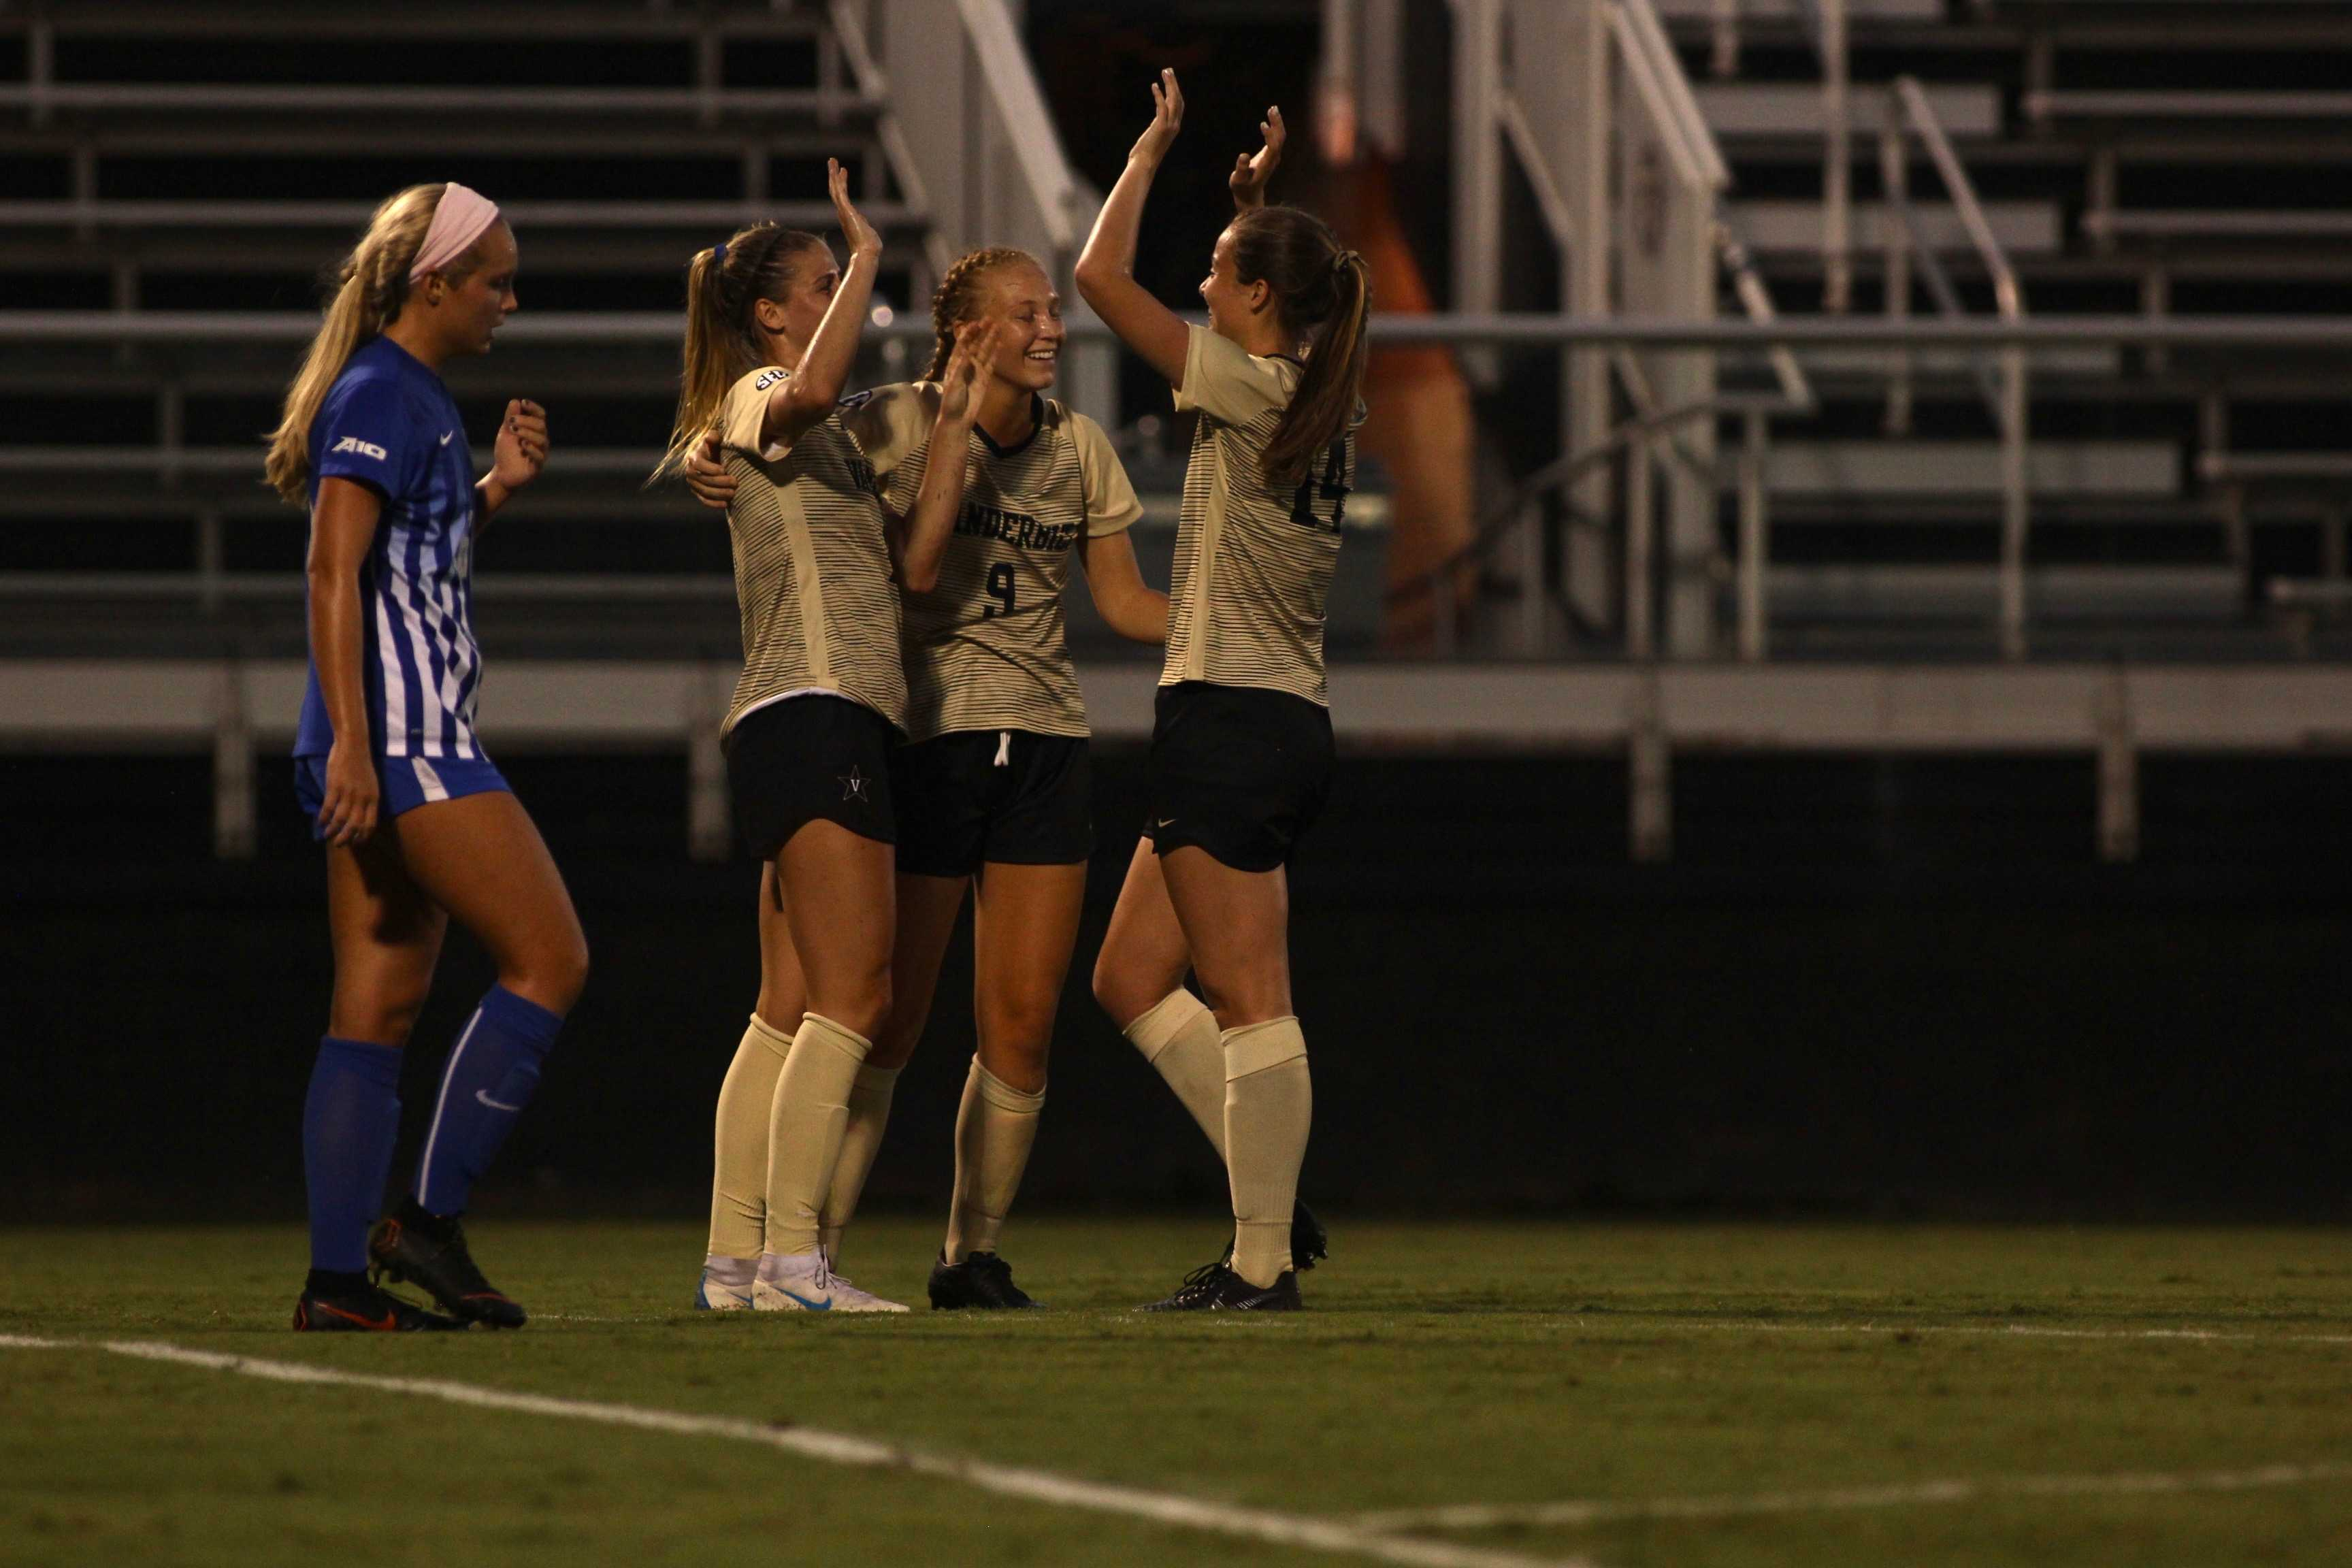 Vanderbilt Soccer downs Saint Louis 2-0 in fourth straight win